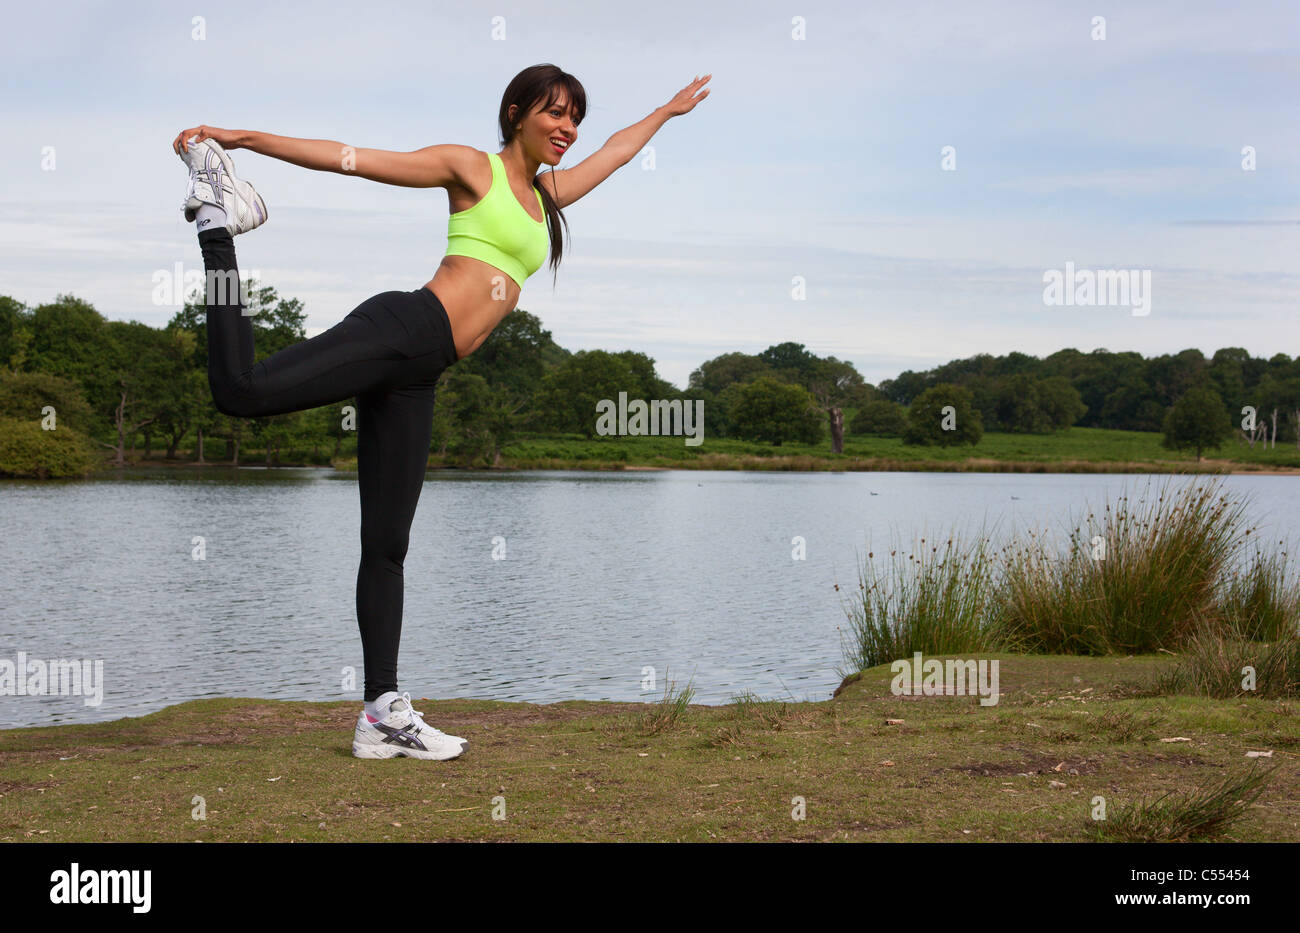 a young woman warms up for her fitness workout next to a lake stock